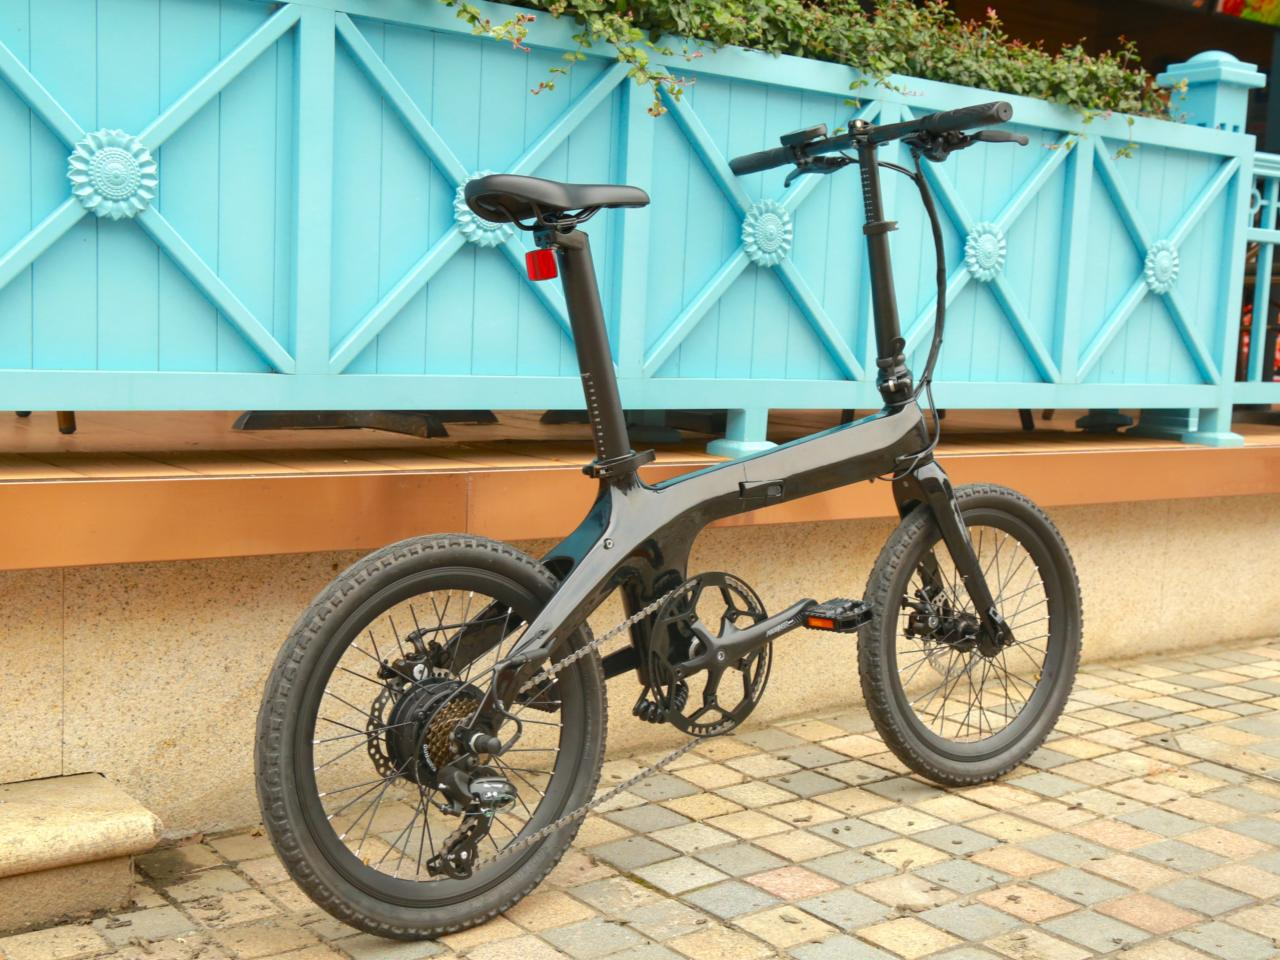 The Morfuns Éole folding ebike rocks a carbon fiber frame, seatpost battery pack, and 250-W hub motor